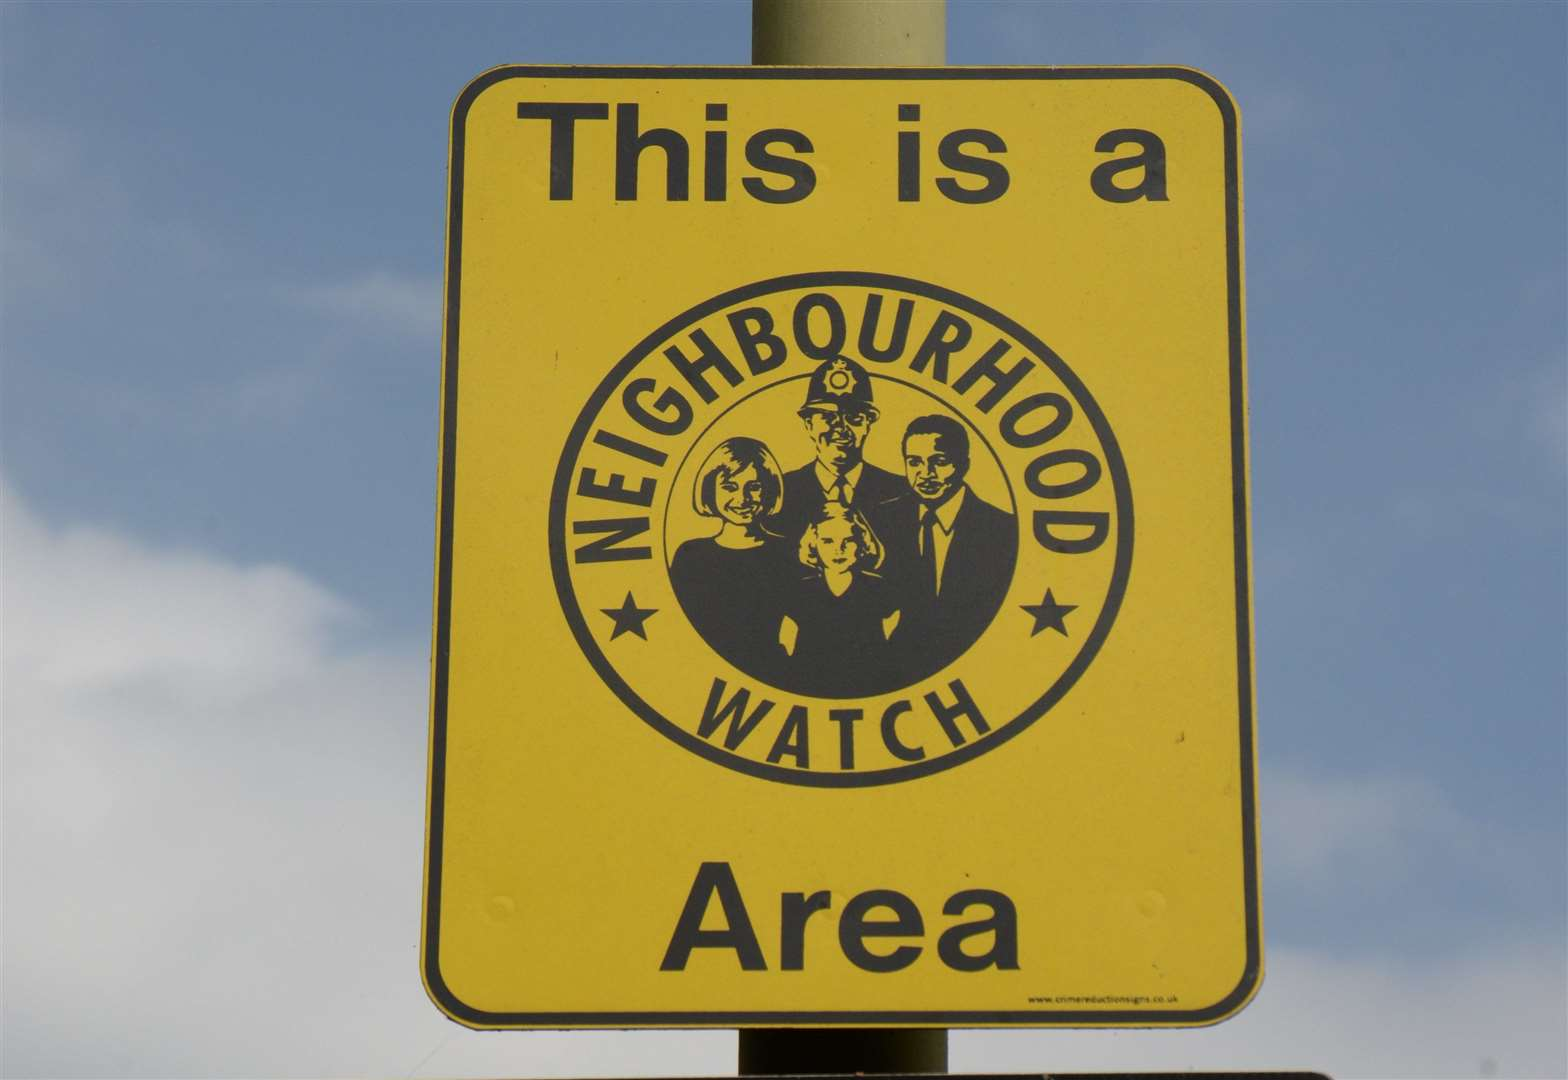 Thefts prompt proposals to set up Neighbourhood Watch scheme in Long Melford